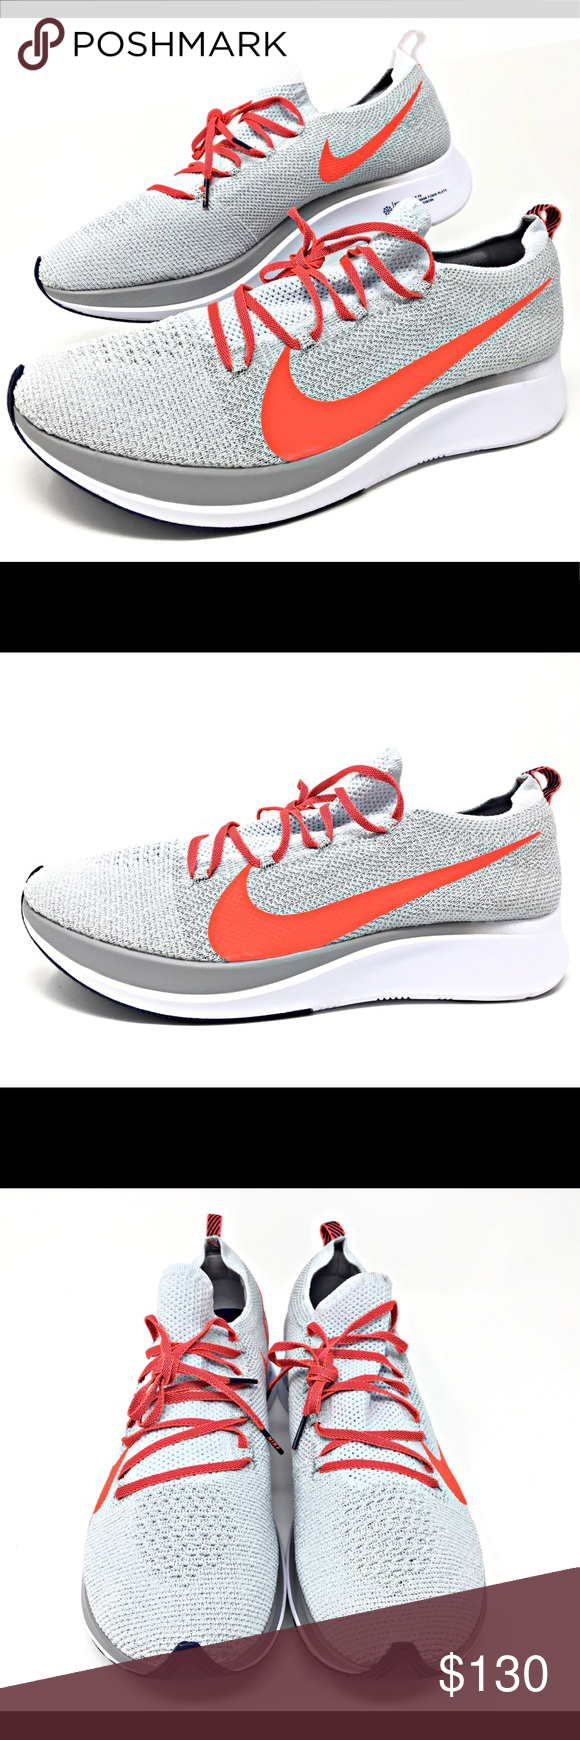 4c39fd6ec Nike Zoom Fly Flyknit Crimson Men's Running 12.5 Nike Zoom Fly Flyknit  Color: Pure Platinum